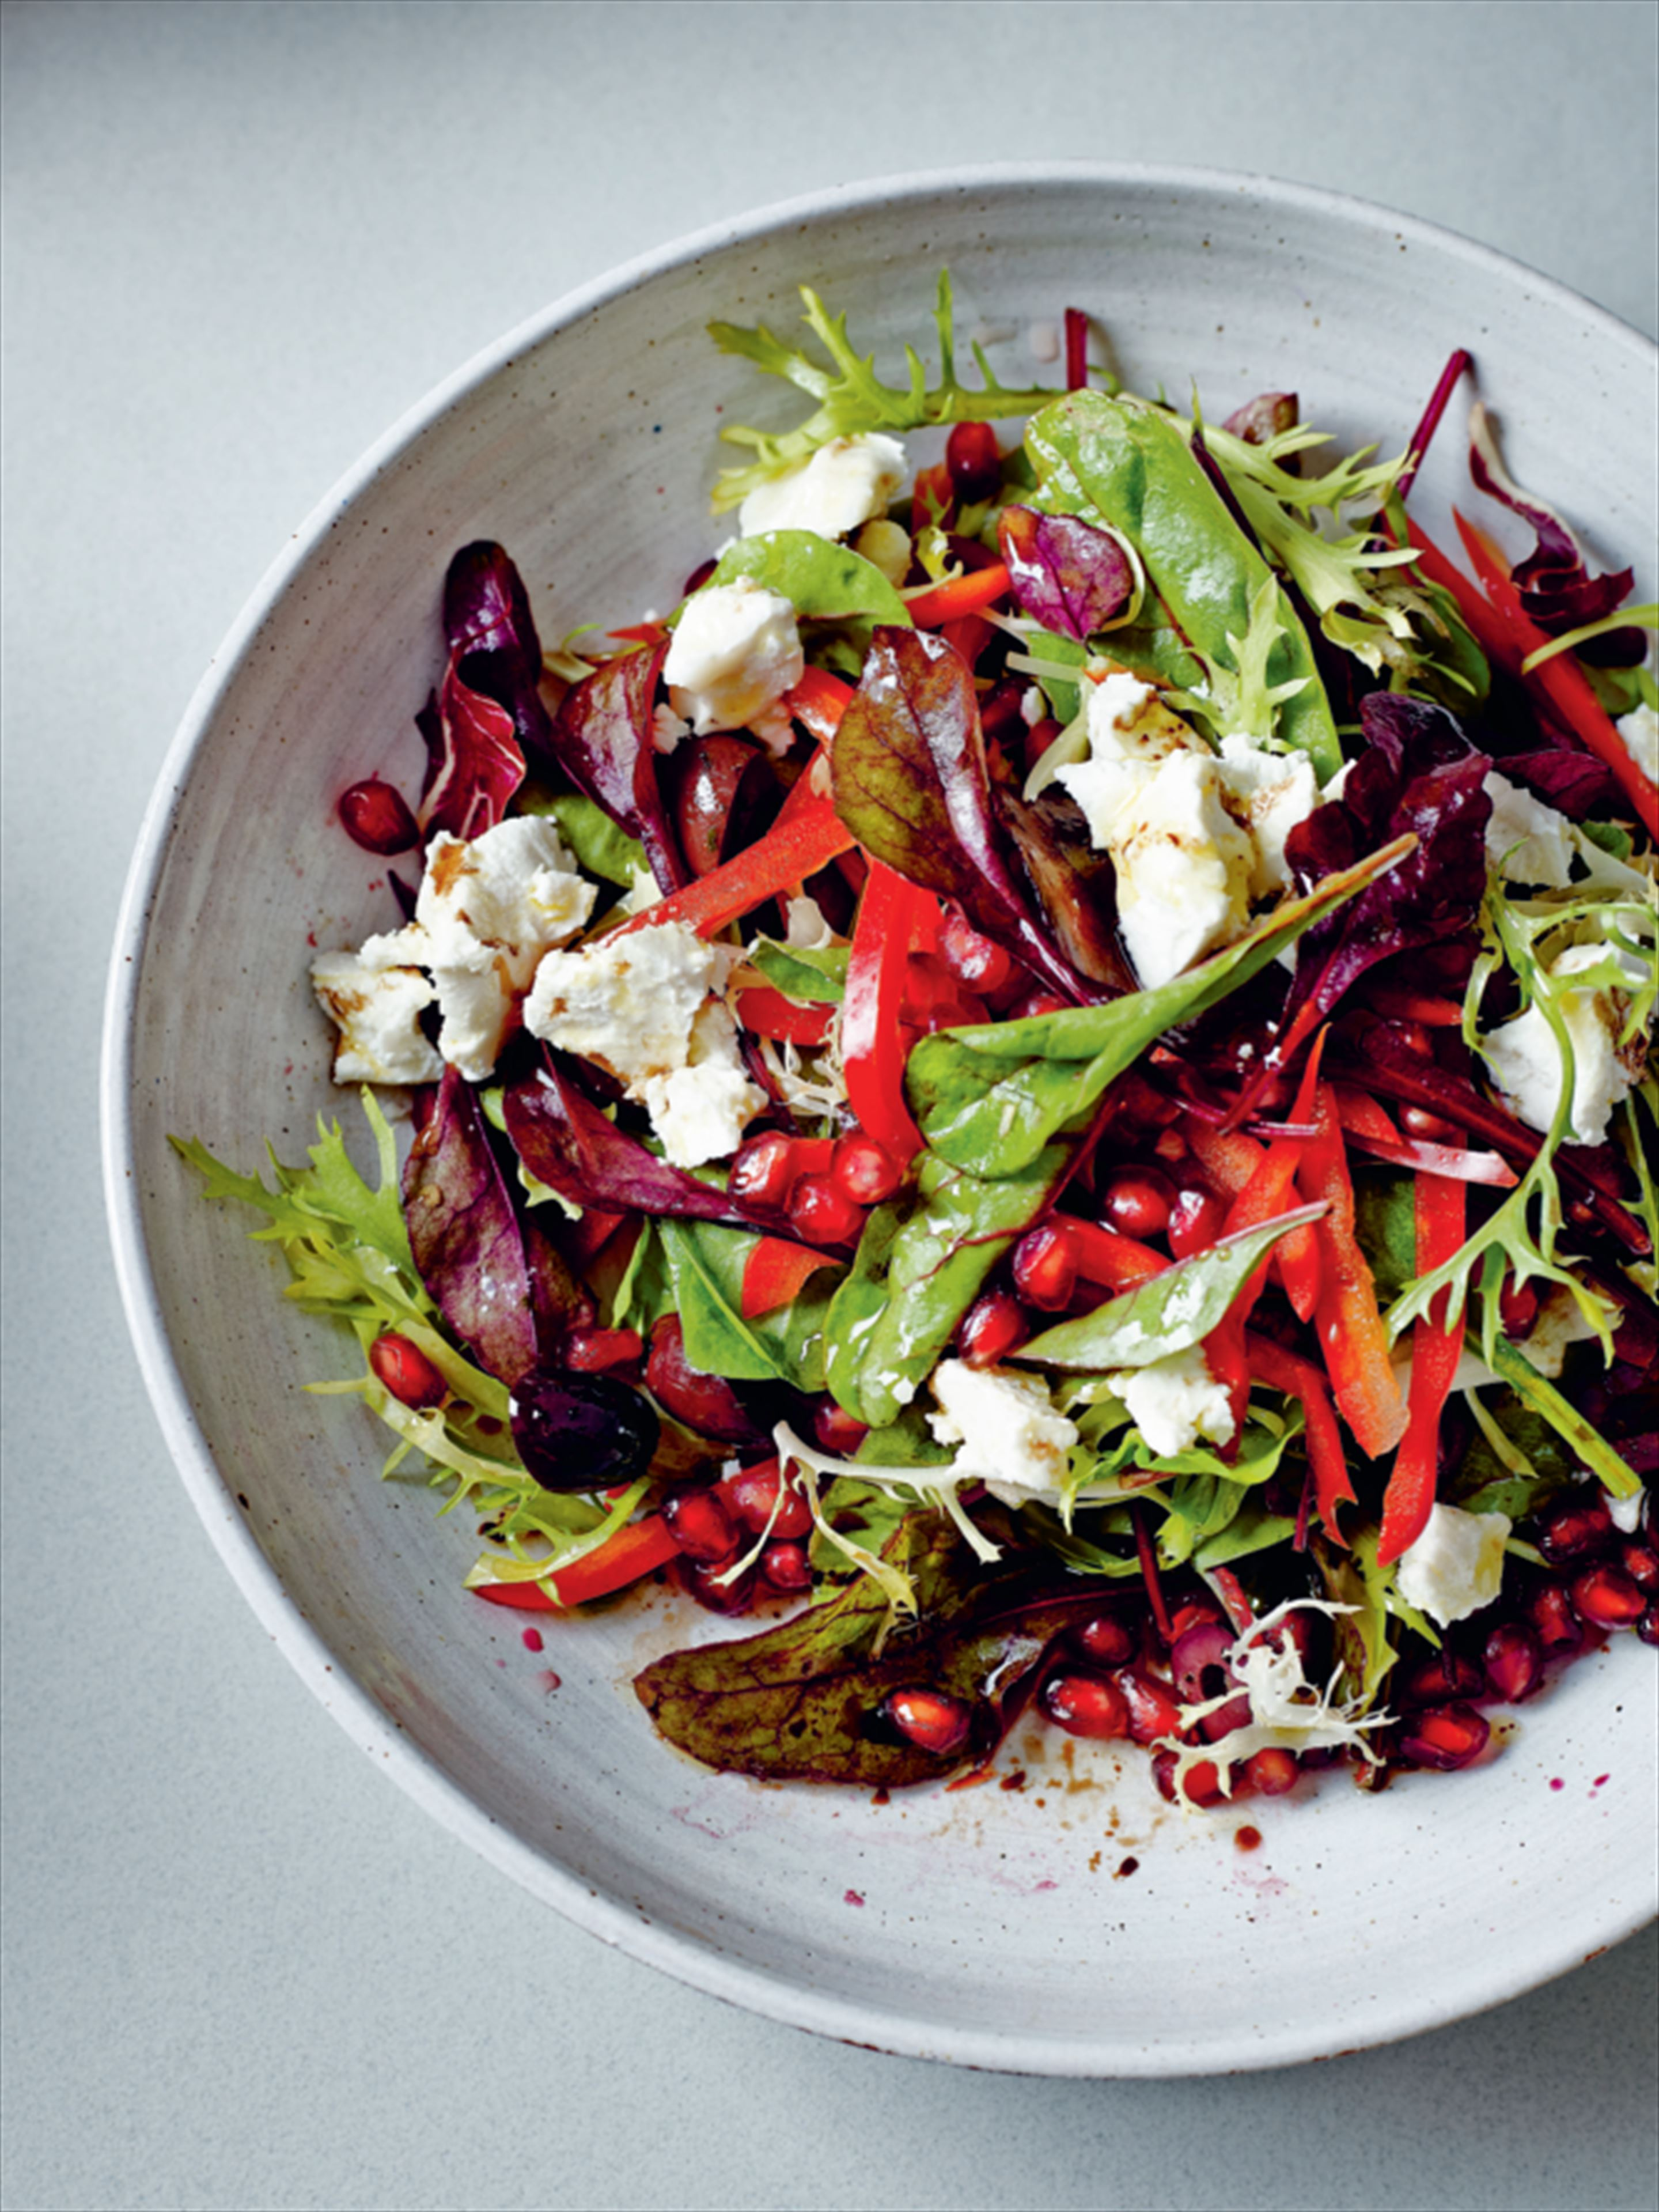 Goat's cheese, pomegranate and olive salad